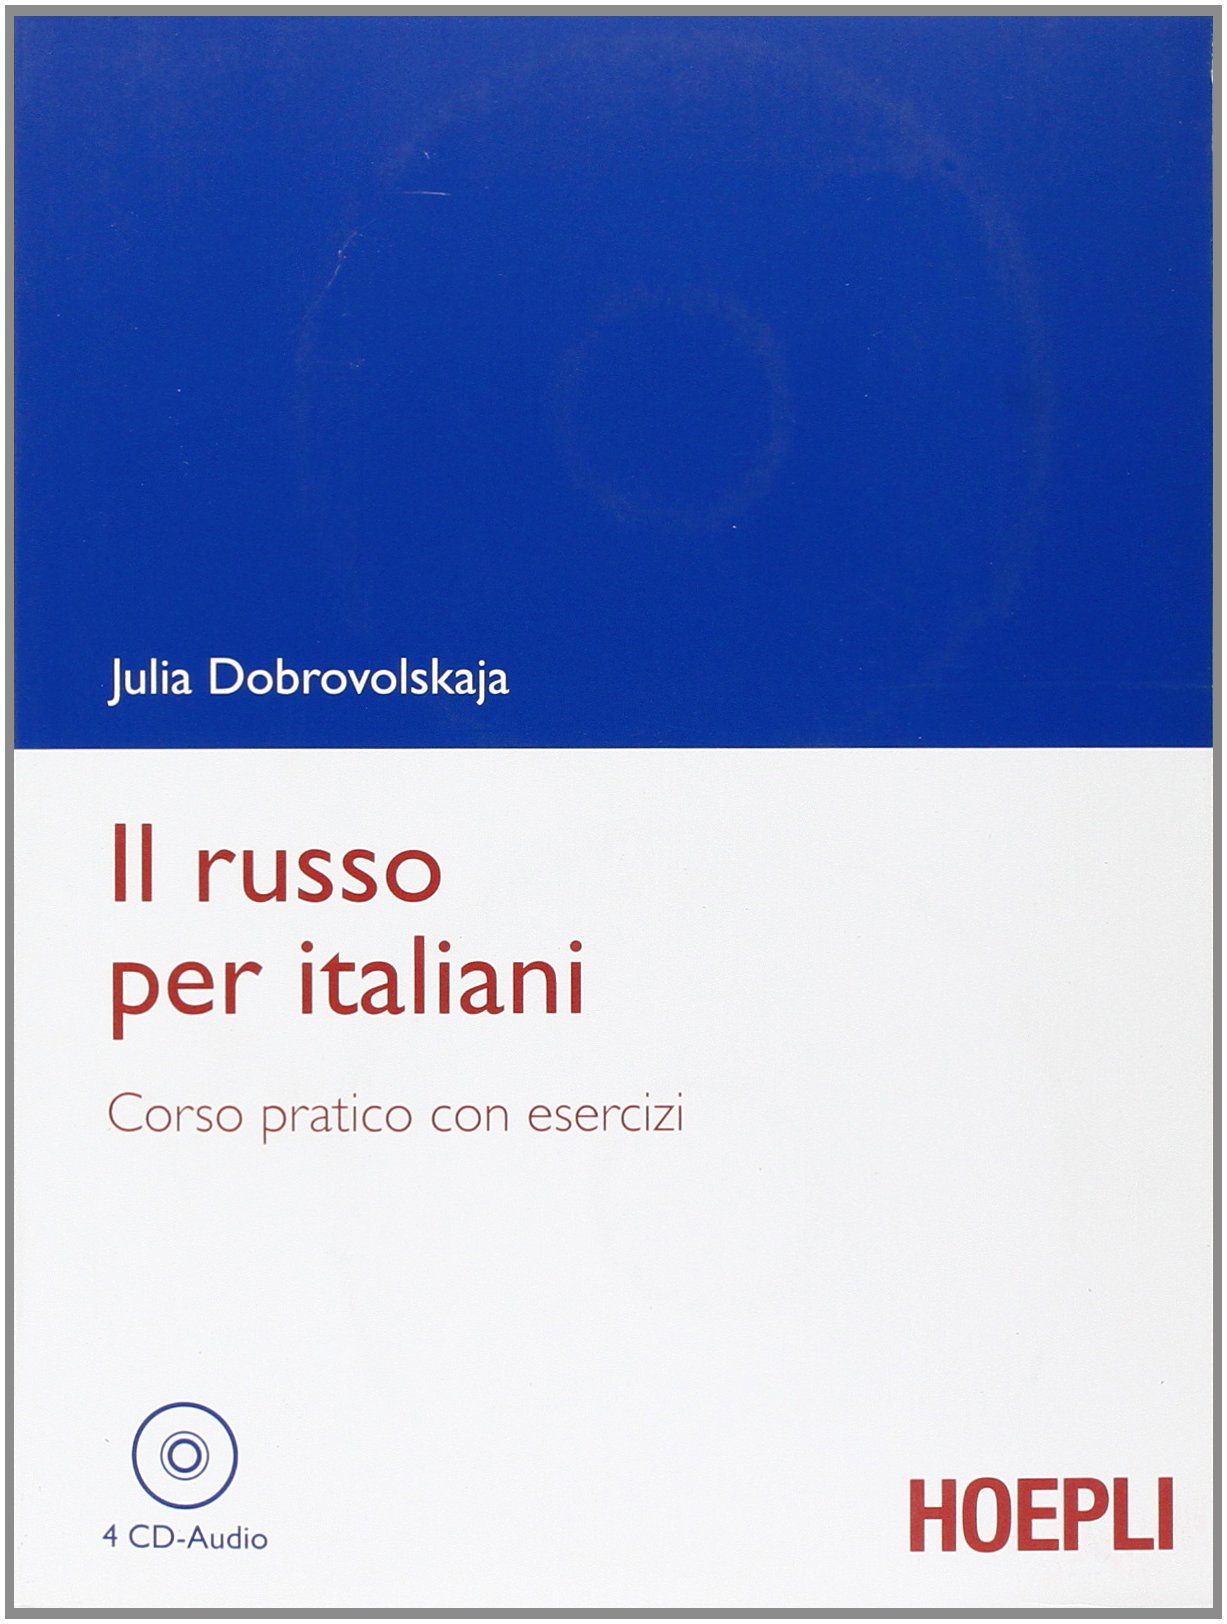 Dating online non incontrare